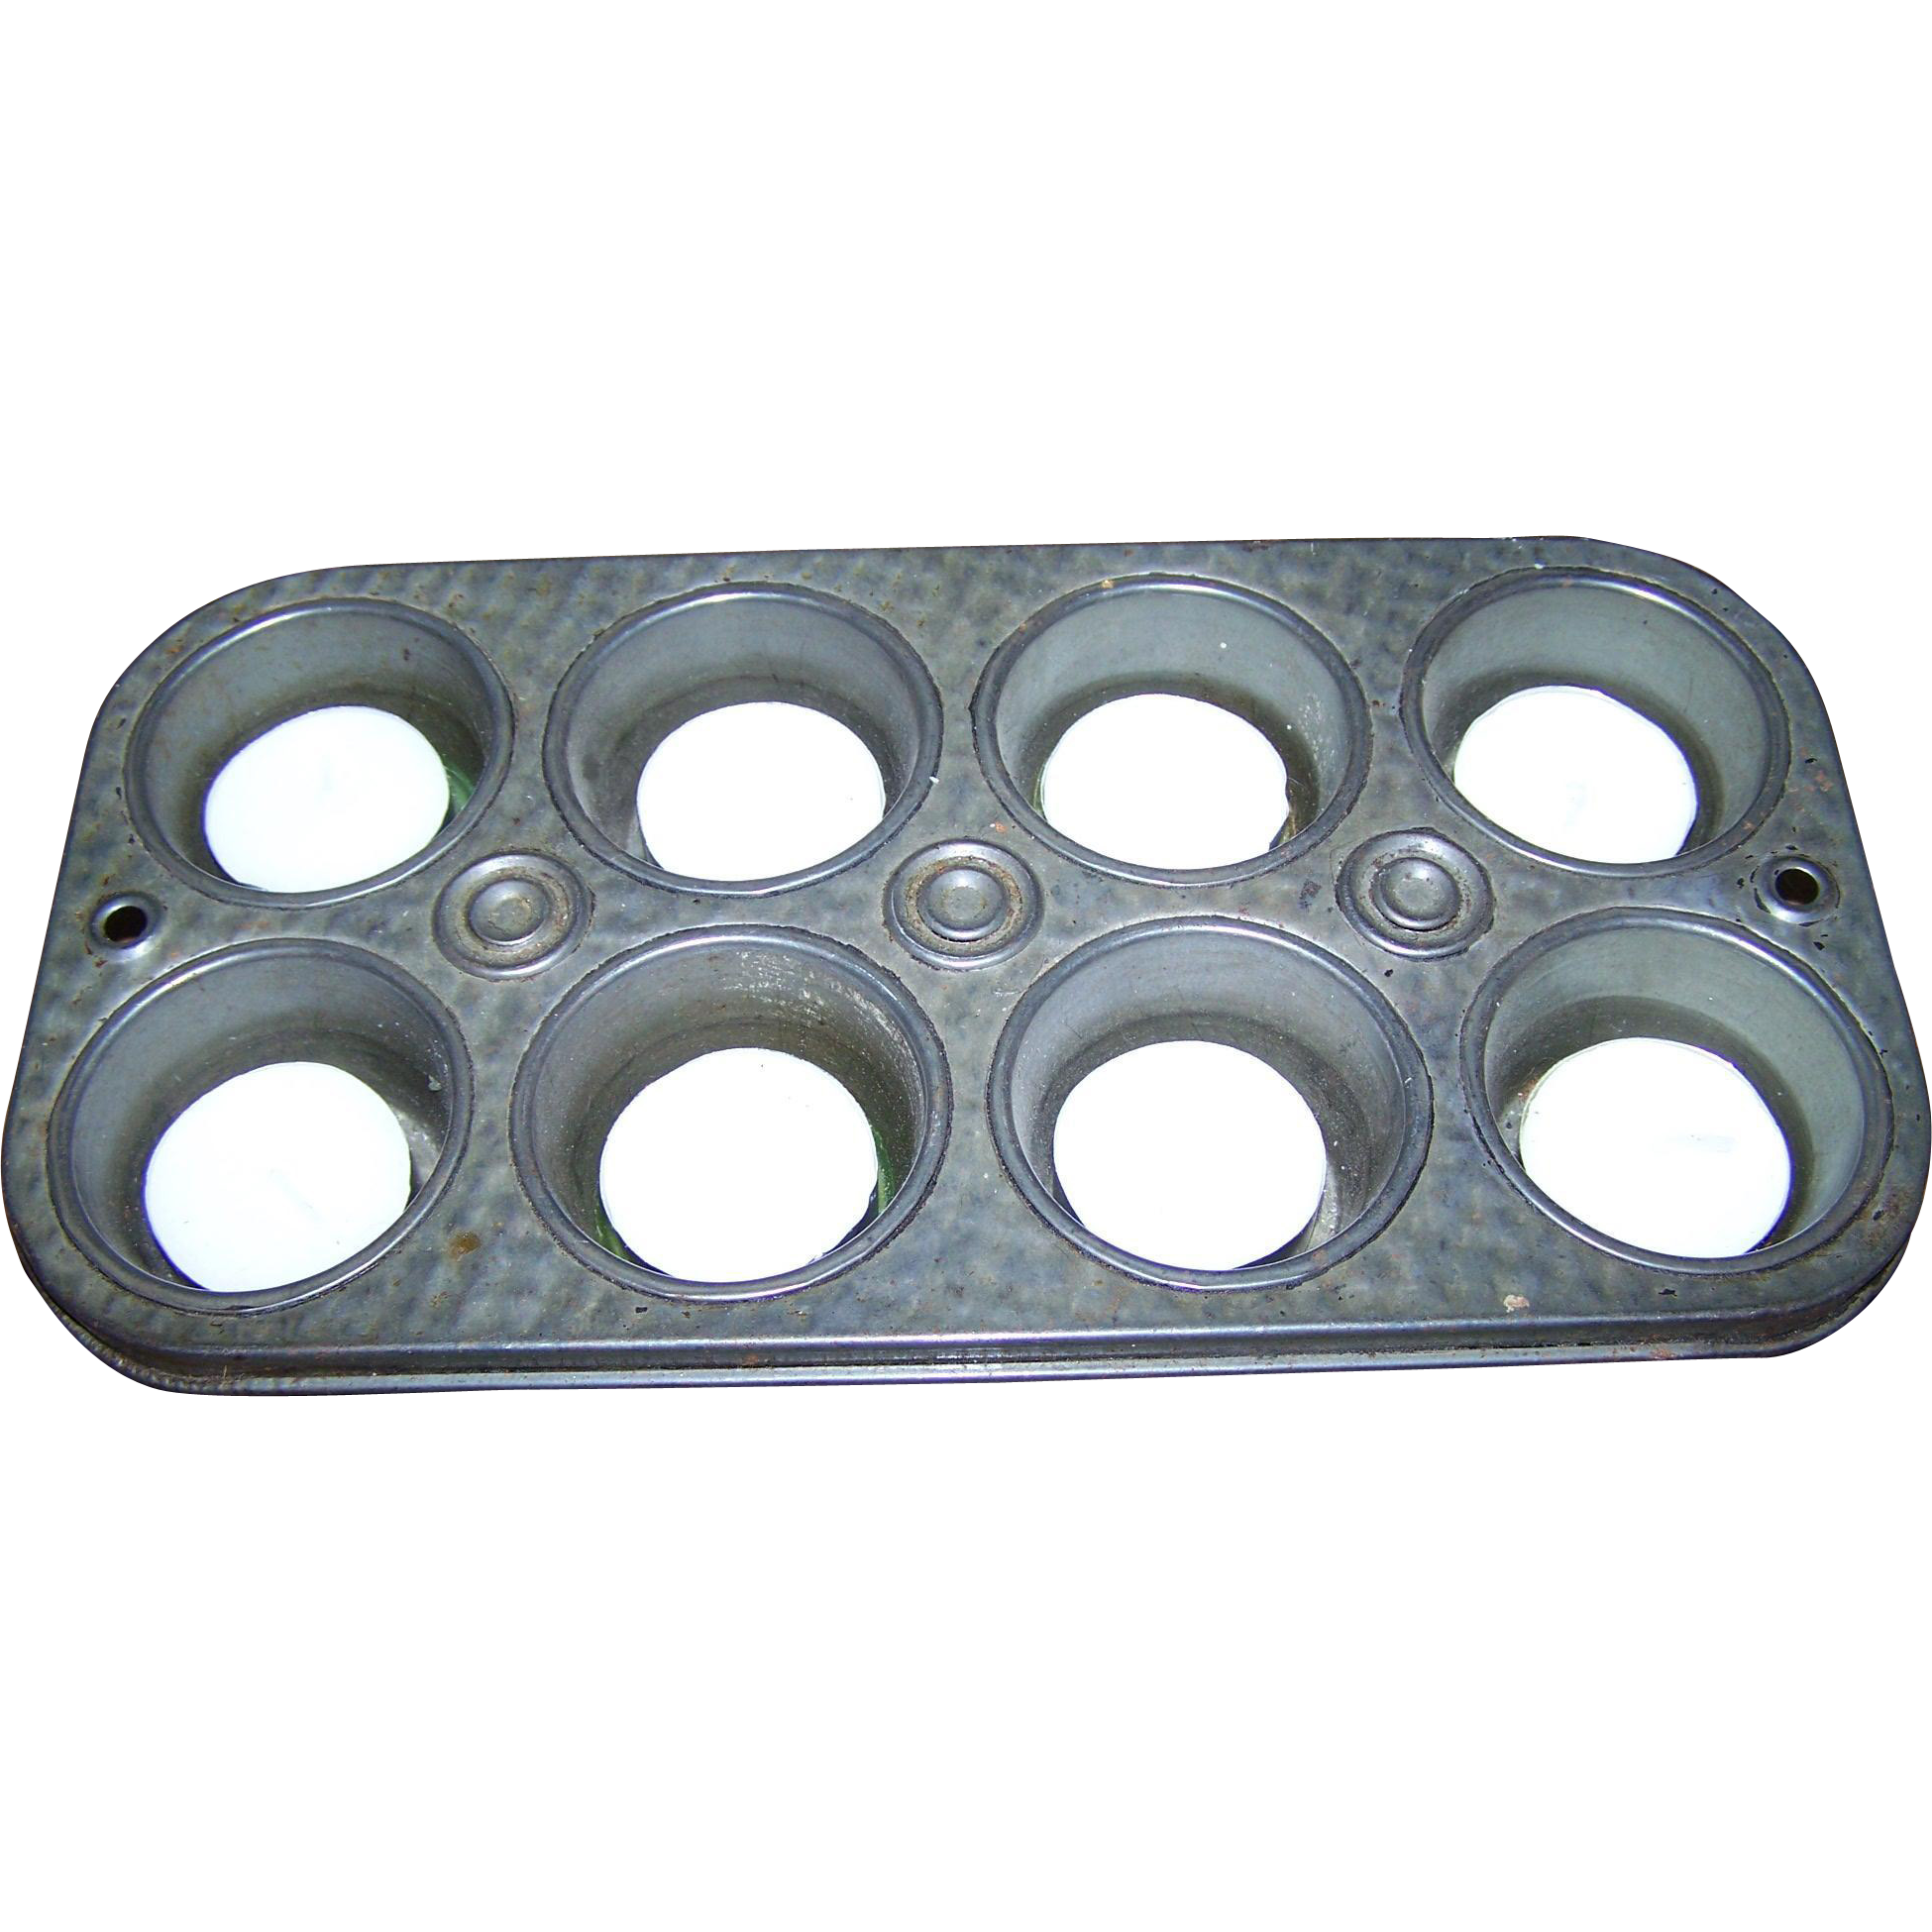 Lovely Small Metal Ware Muffin Baking Tin OR Tea Lite Candle Holder